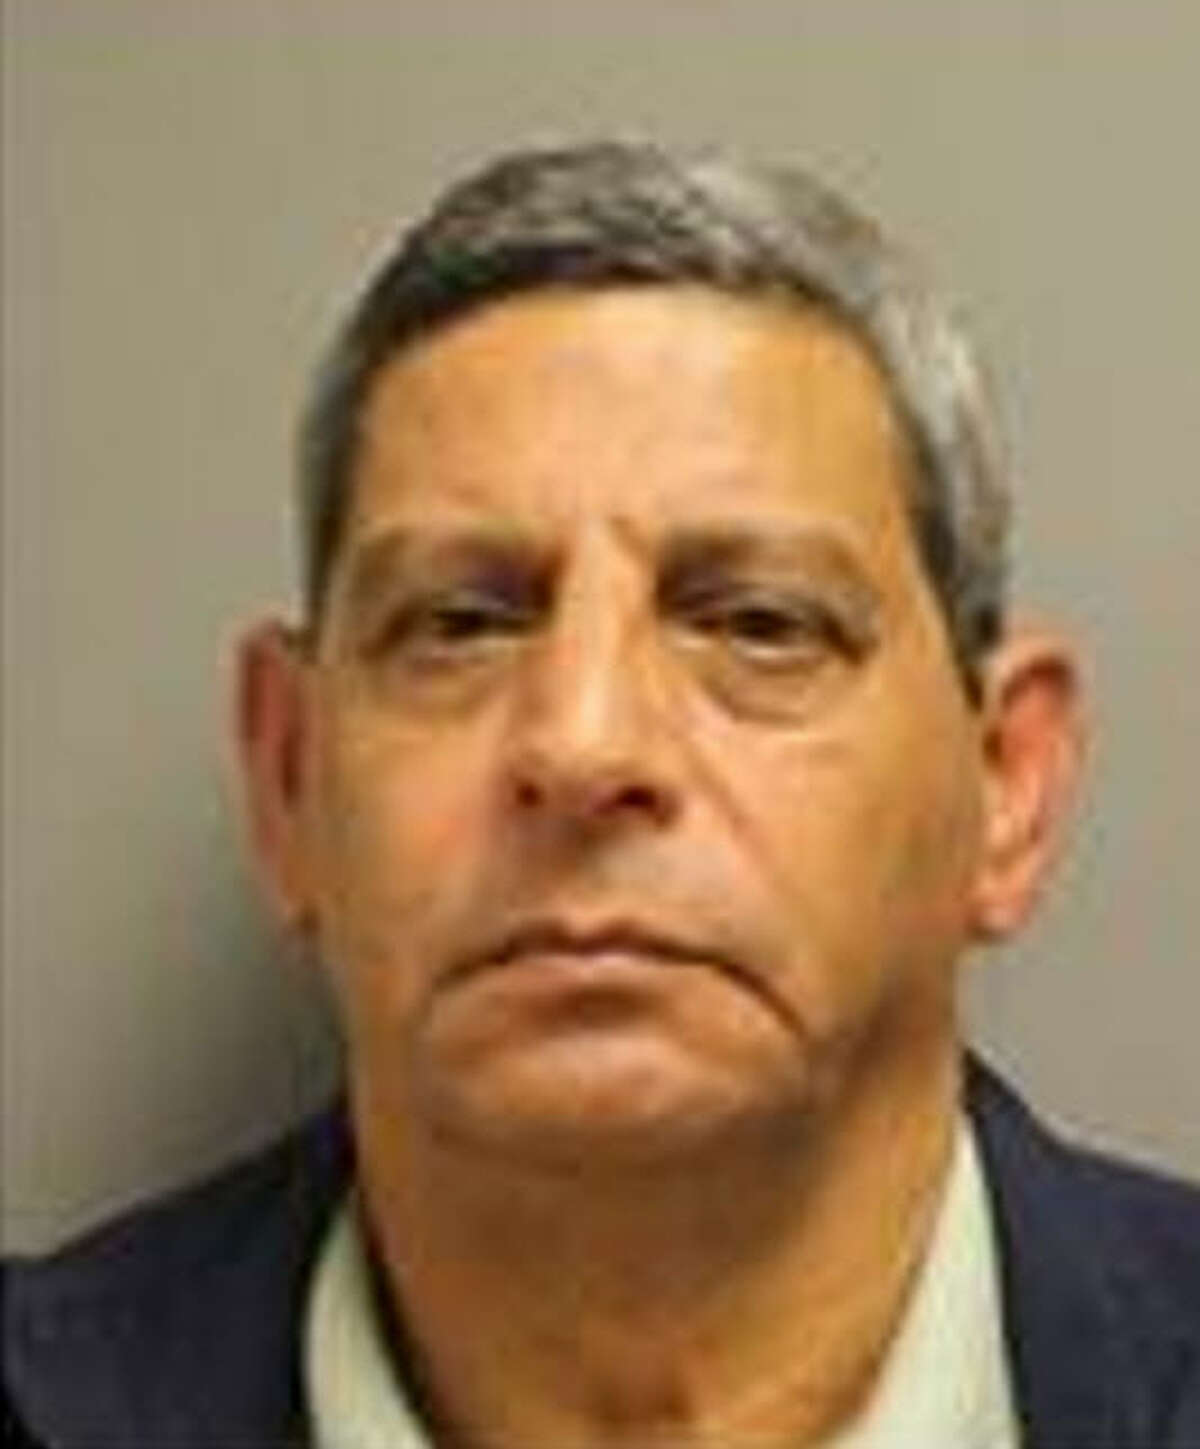 Assad Abdelmessih was arrested and charged with prostitution (solicitation) as part of a two-day sex sting conducted Jan. 20-21, 2016 by Harris County Constable Pct. 4.